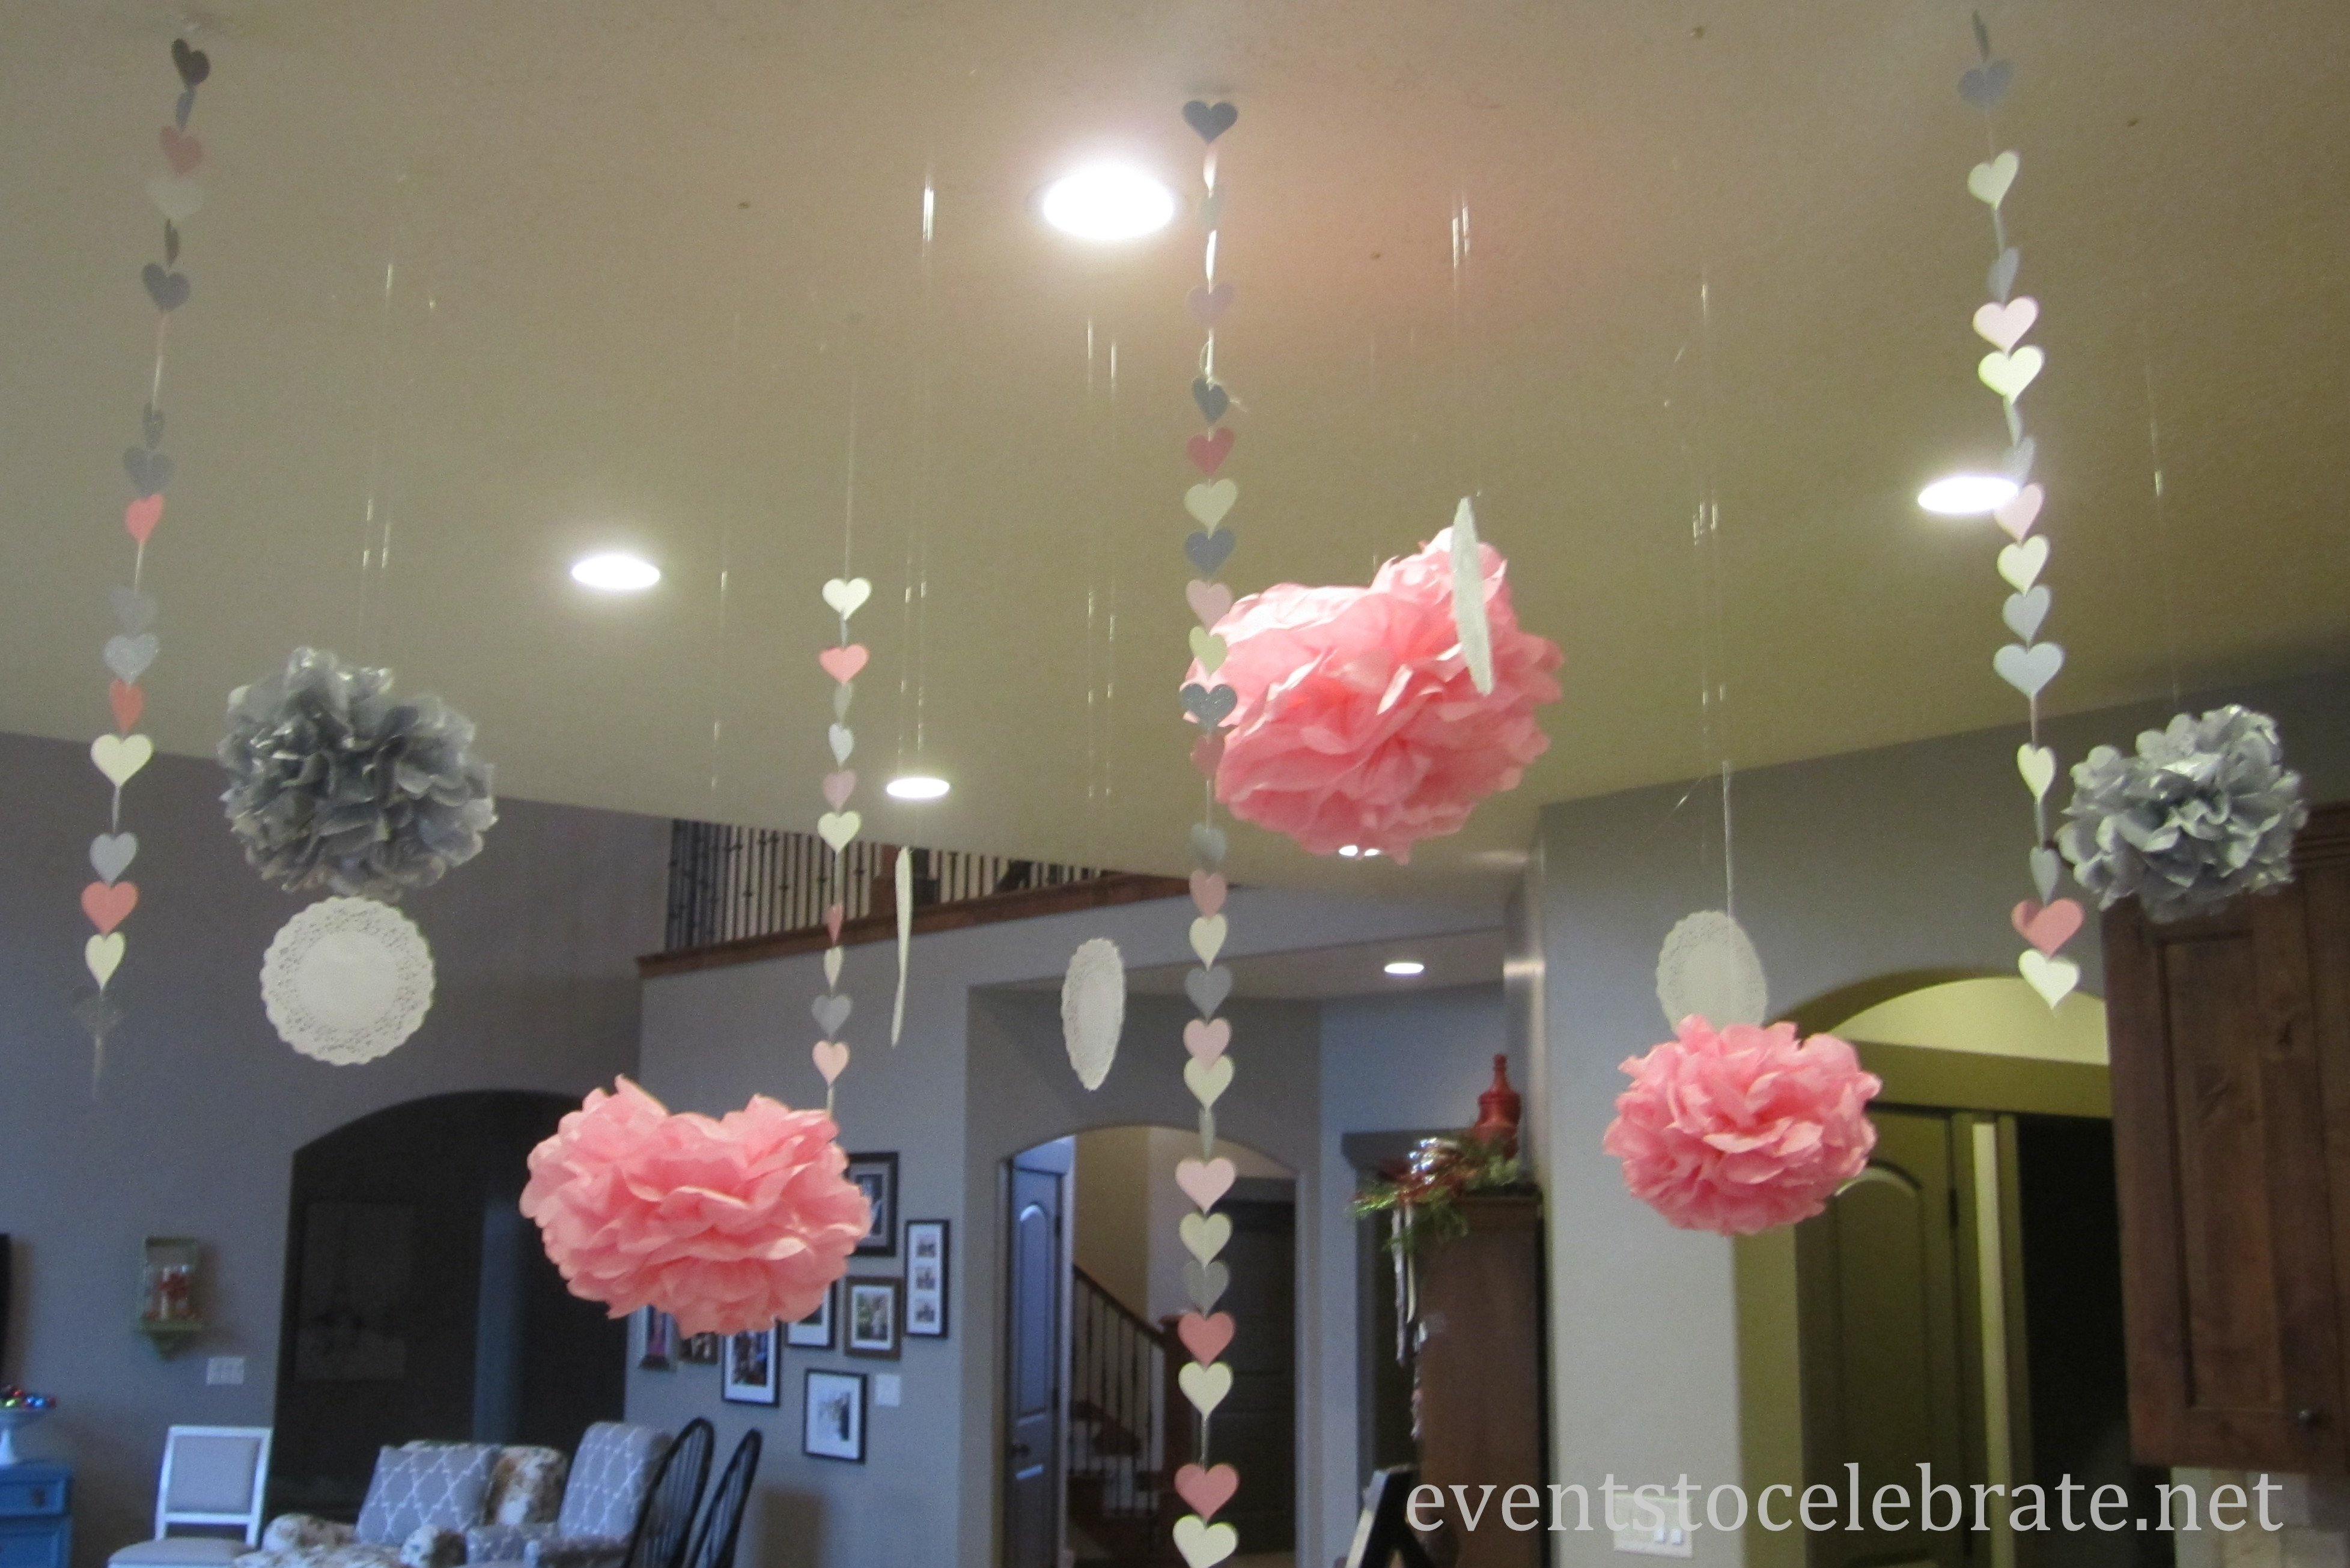 10 Stunning Decorating Ideas For Bridal Shower decor ideas for bridal shower decobizz 2020